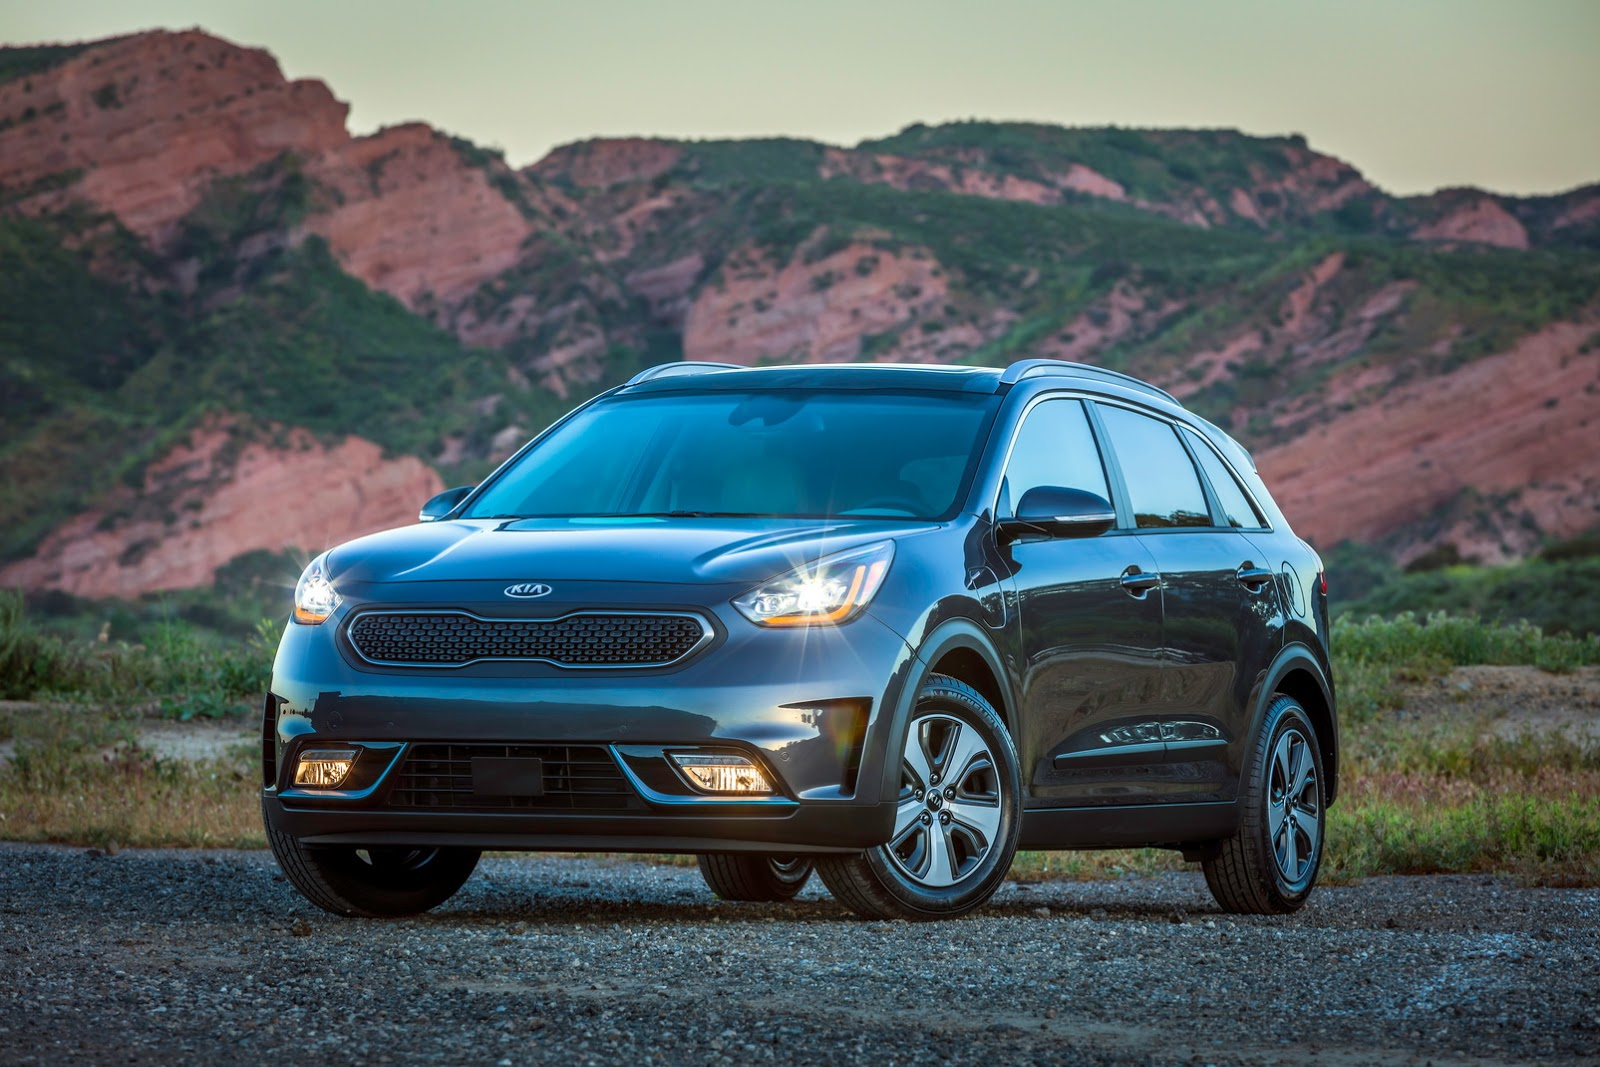 2018 kia niro plug in hybrid epa rated 26 miles ev range. Black Bedroom Furniture Sets. Home Design Ideas